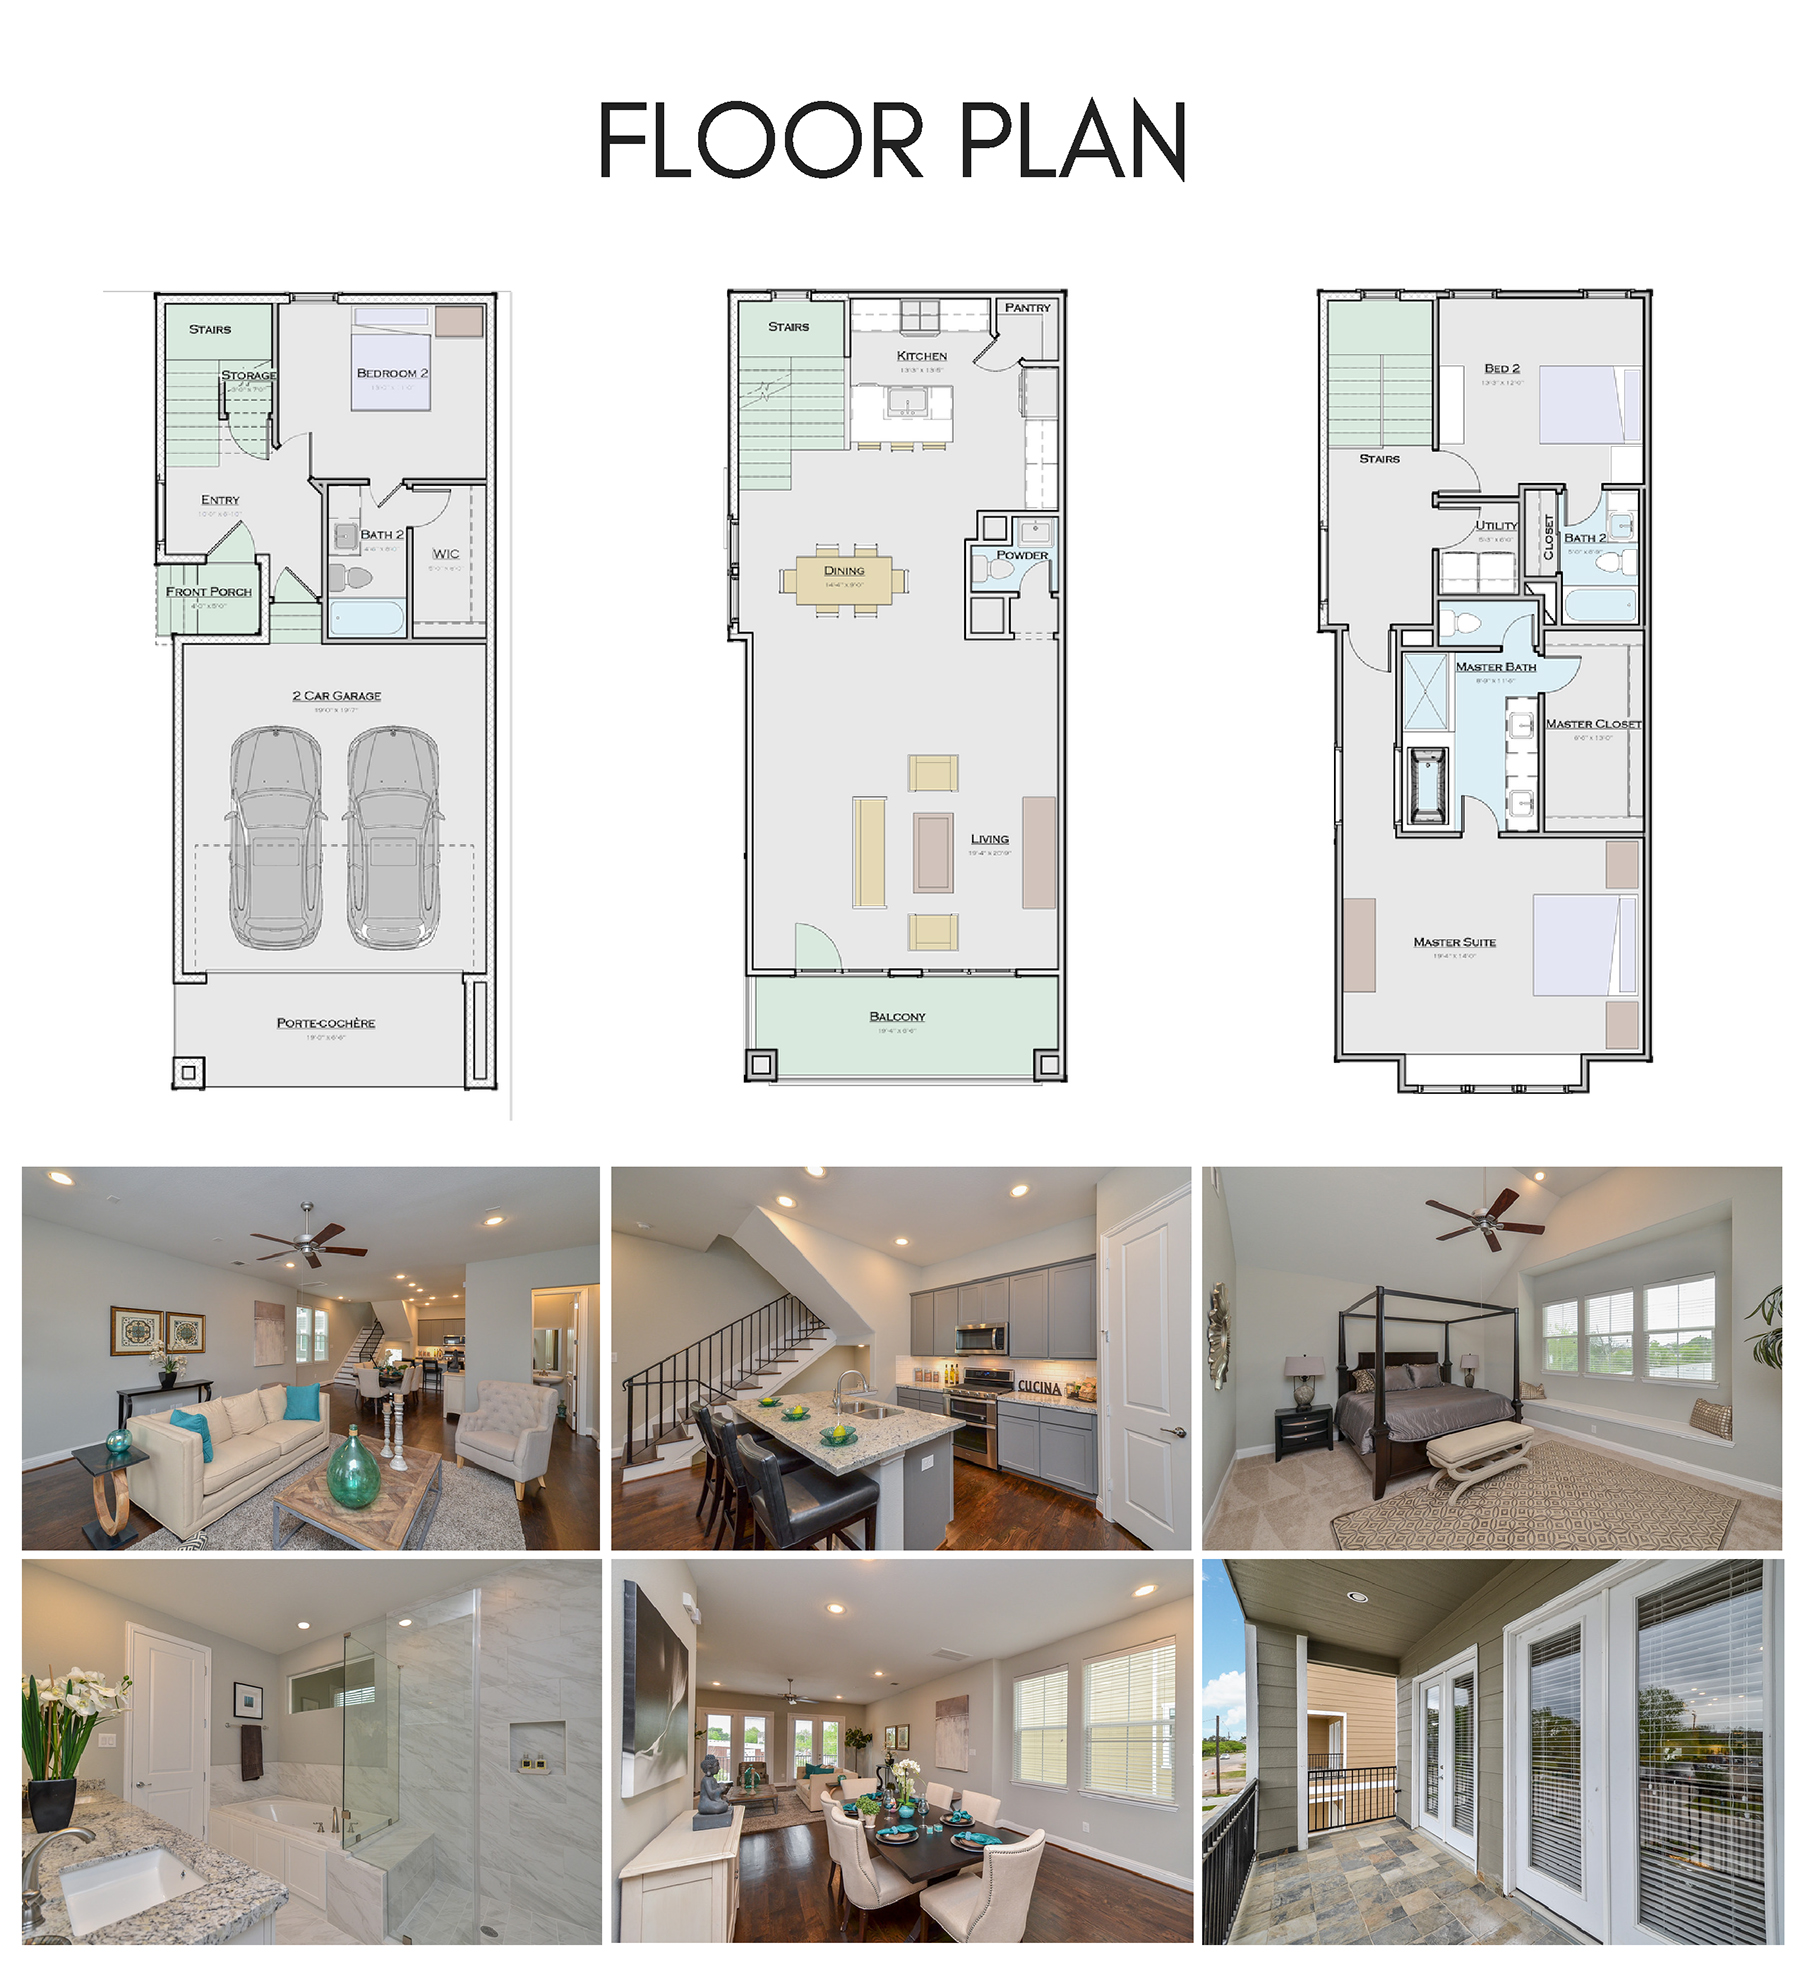 2,279 sq ft, 3 story layout.